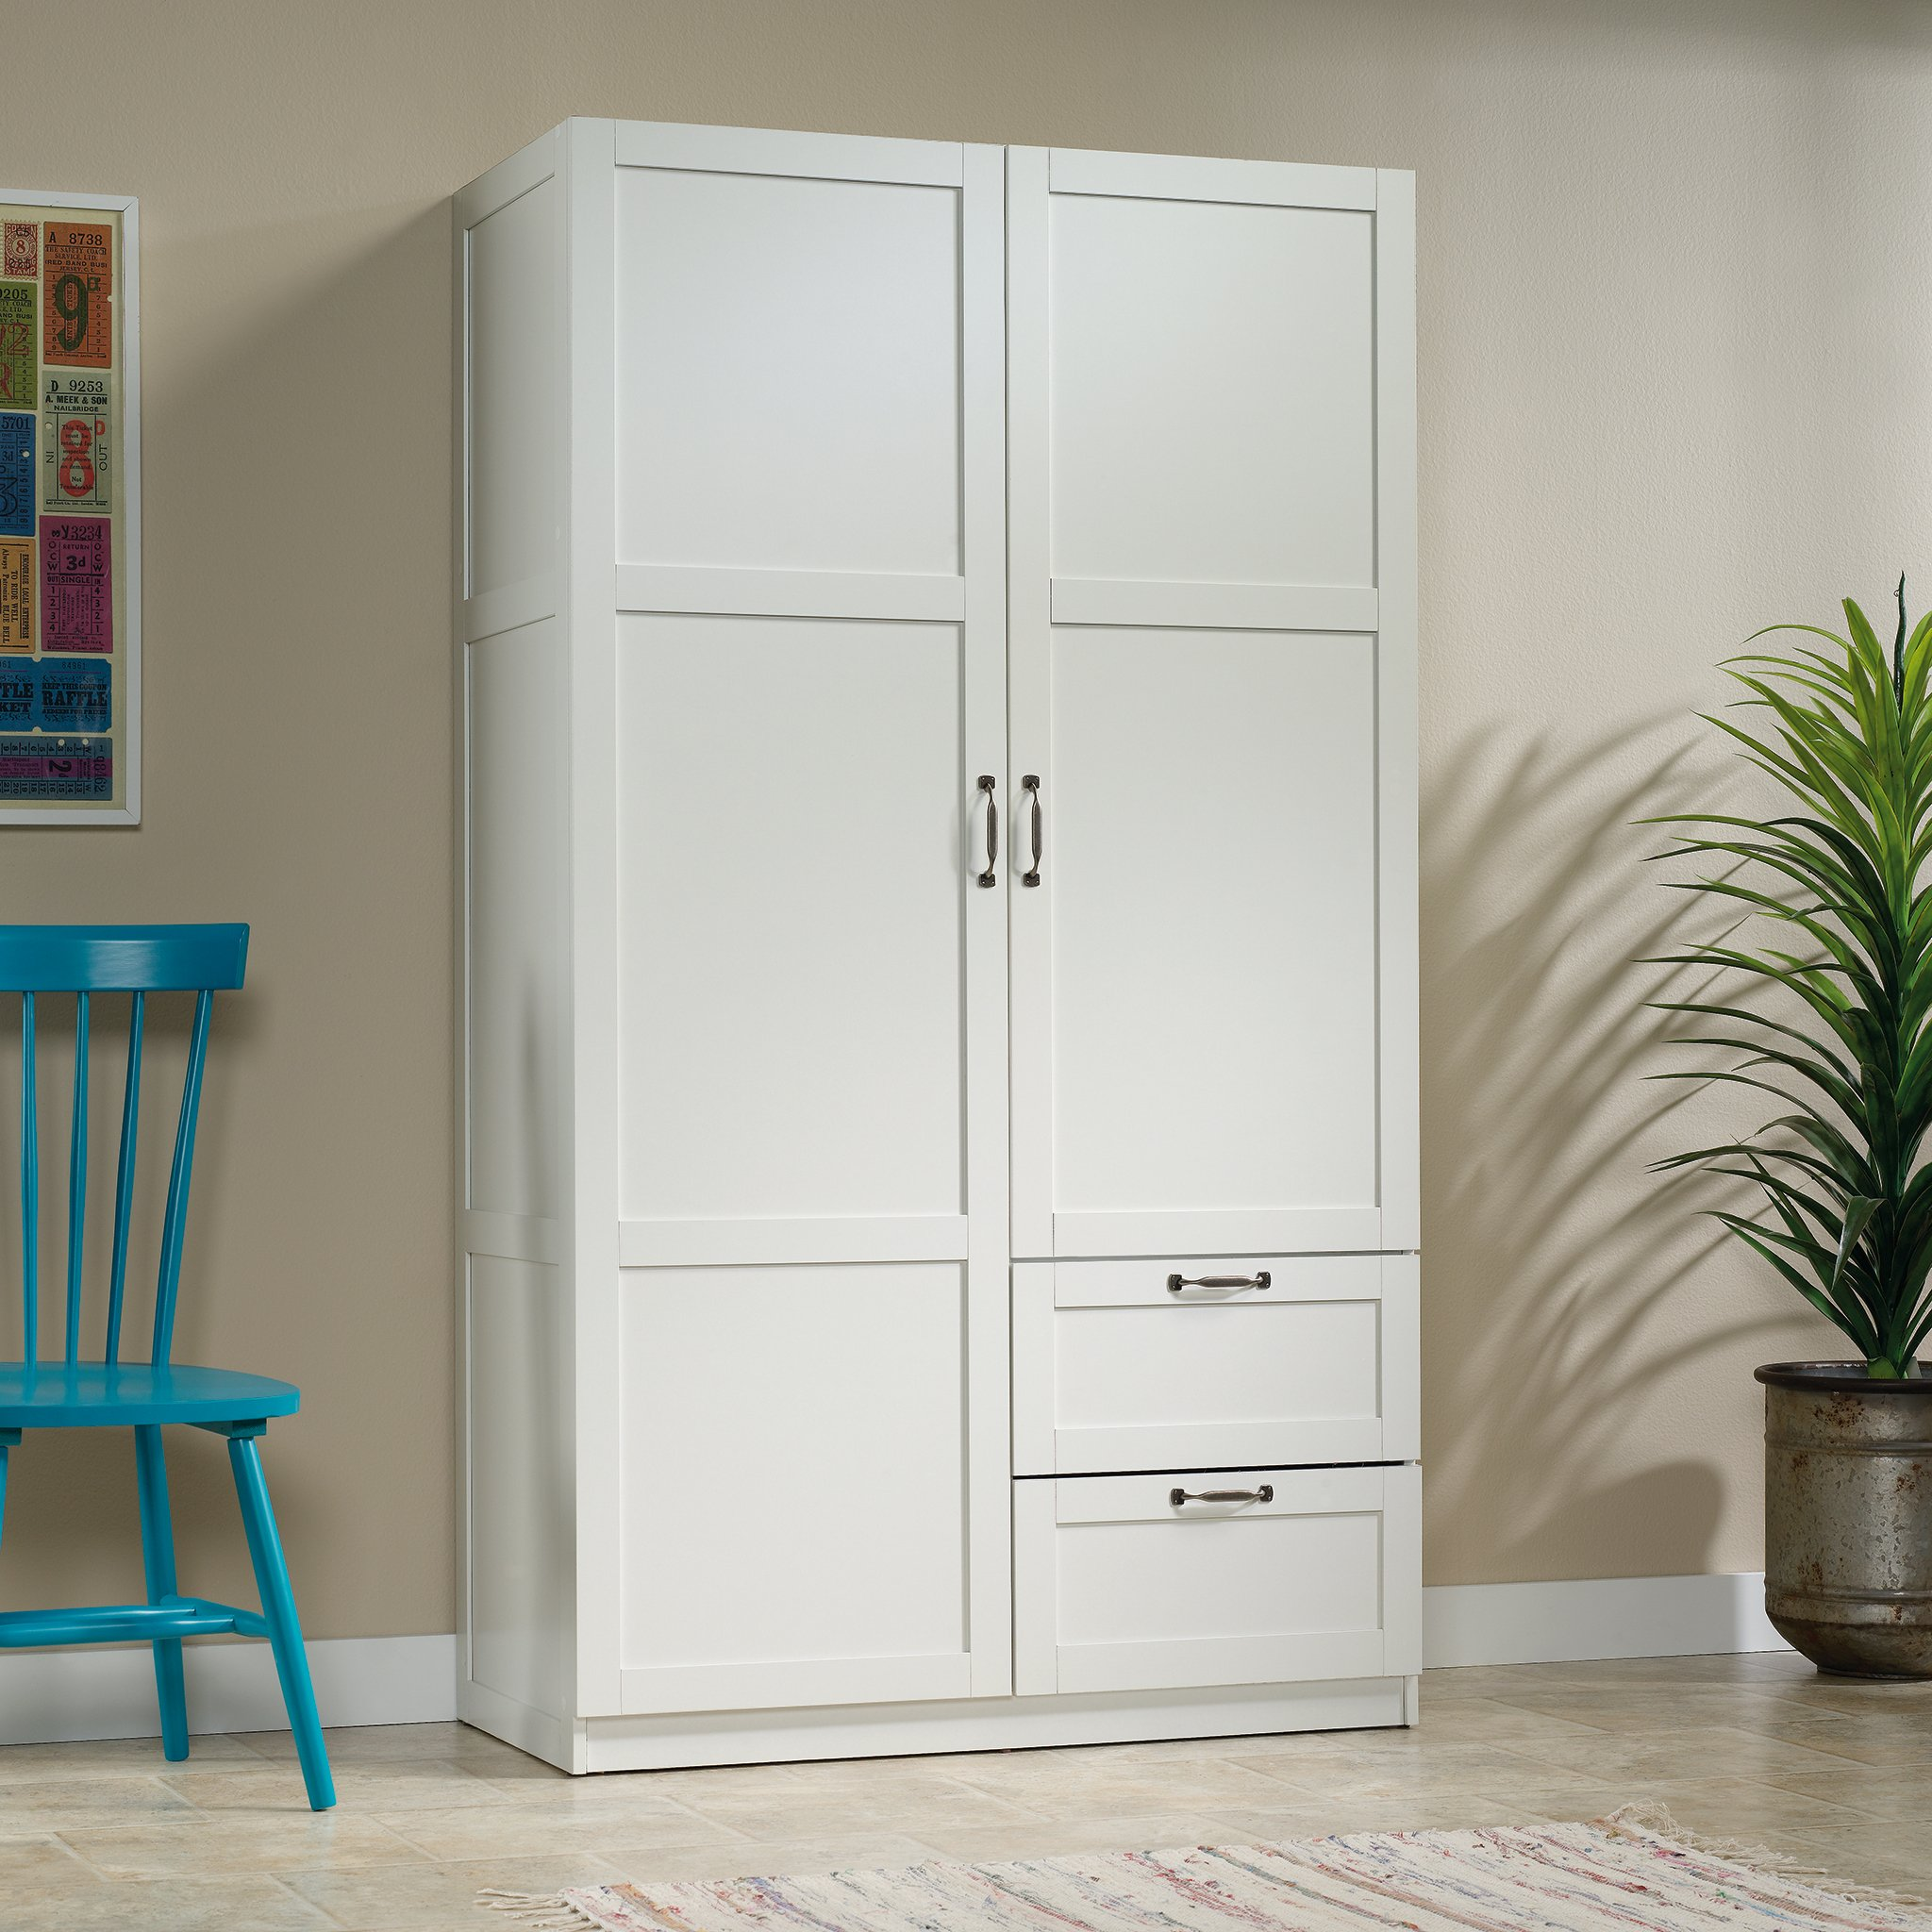 Sauder Large Storage Cabinet, Soft White Finish